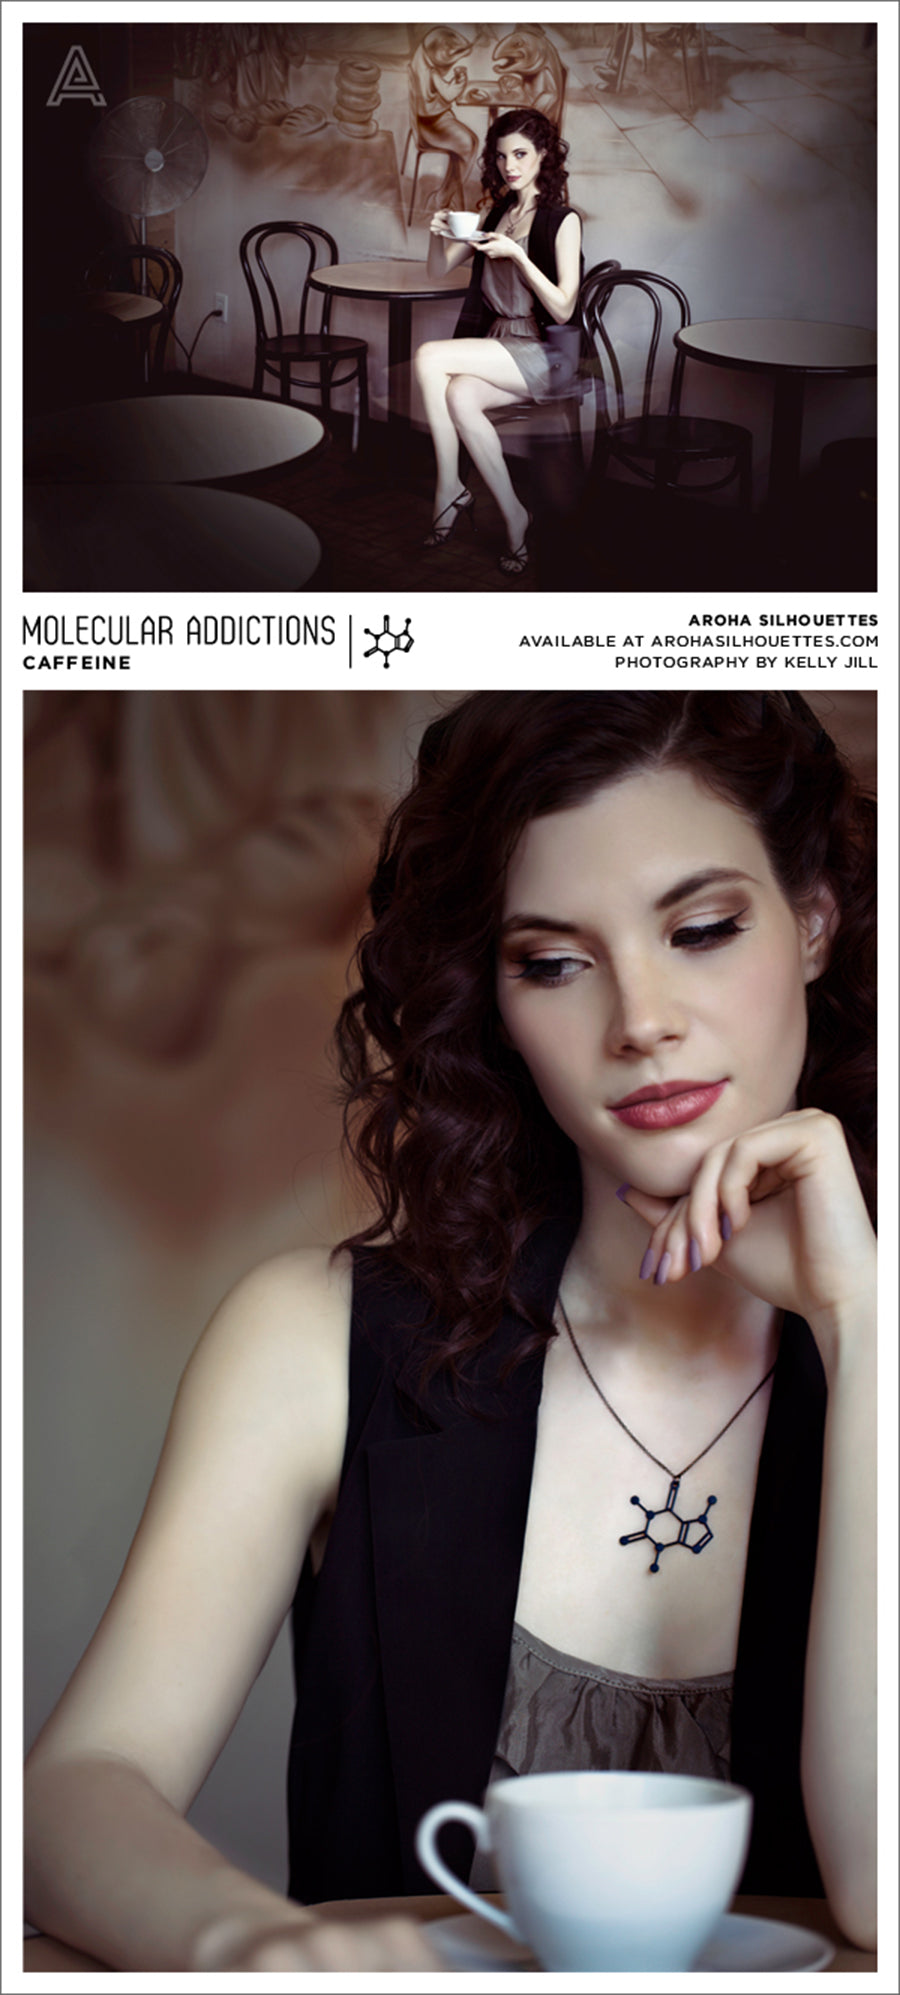 Molecular Addictions Collection by Aroha Silhouettes - Caffeine Molecule Necklace